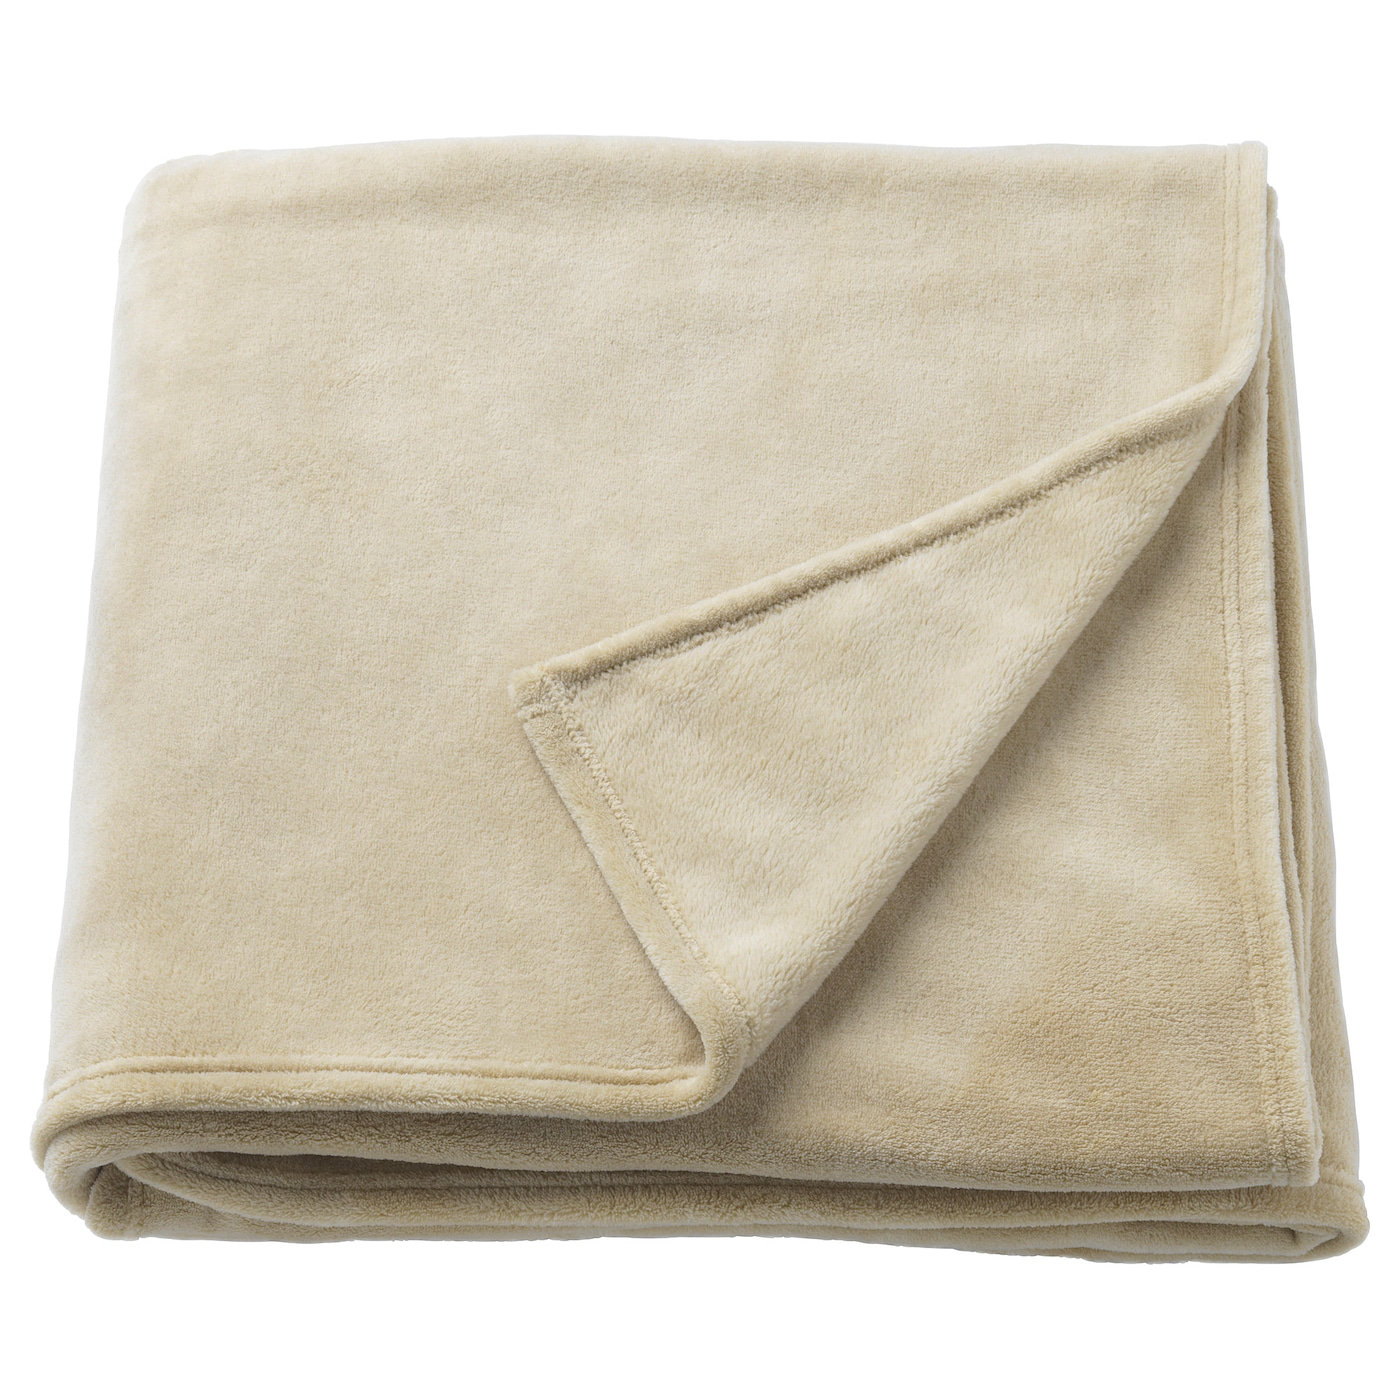 IKEA TRATTVIVA bedspread Fleece is a soft, easy-care material that you can machine wash.